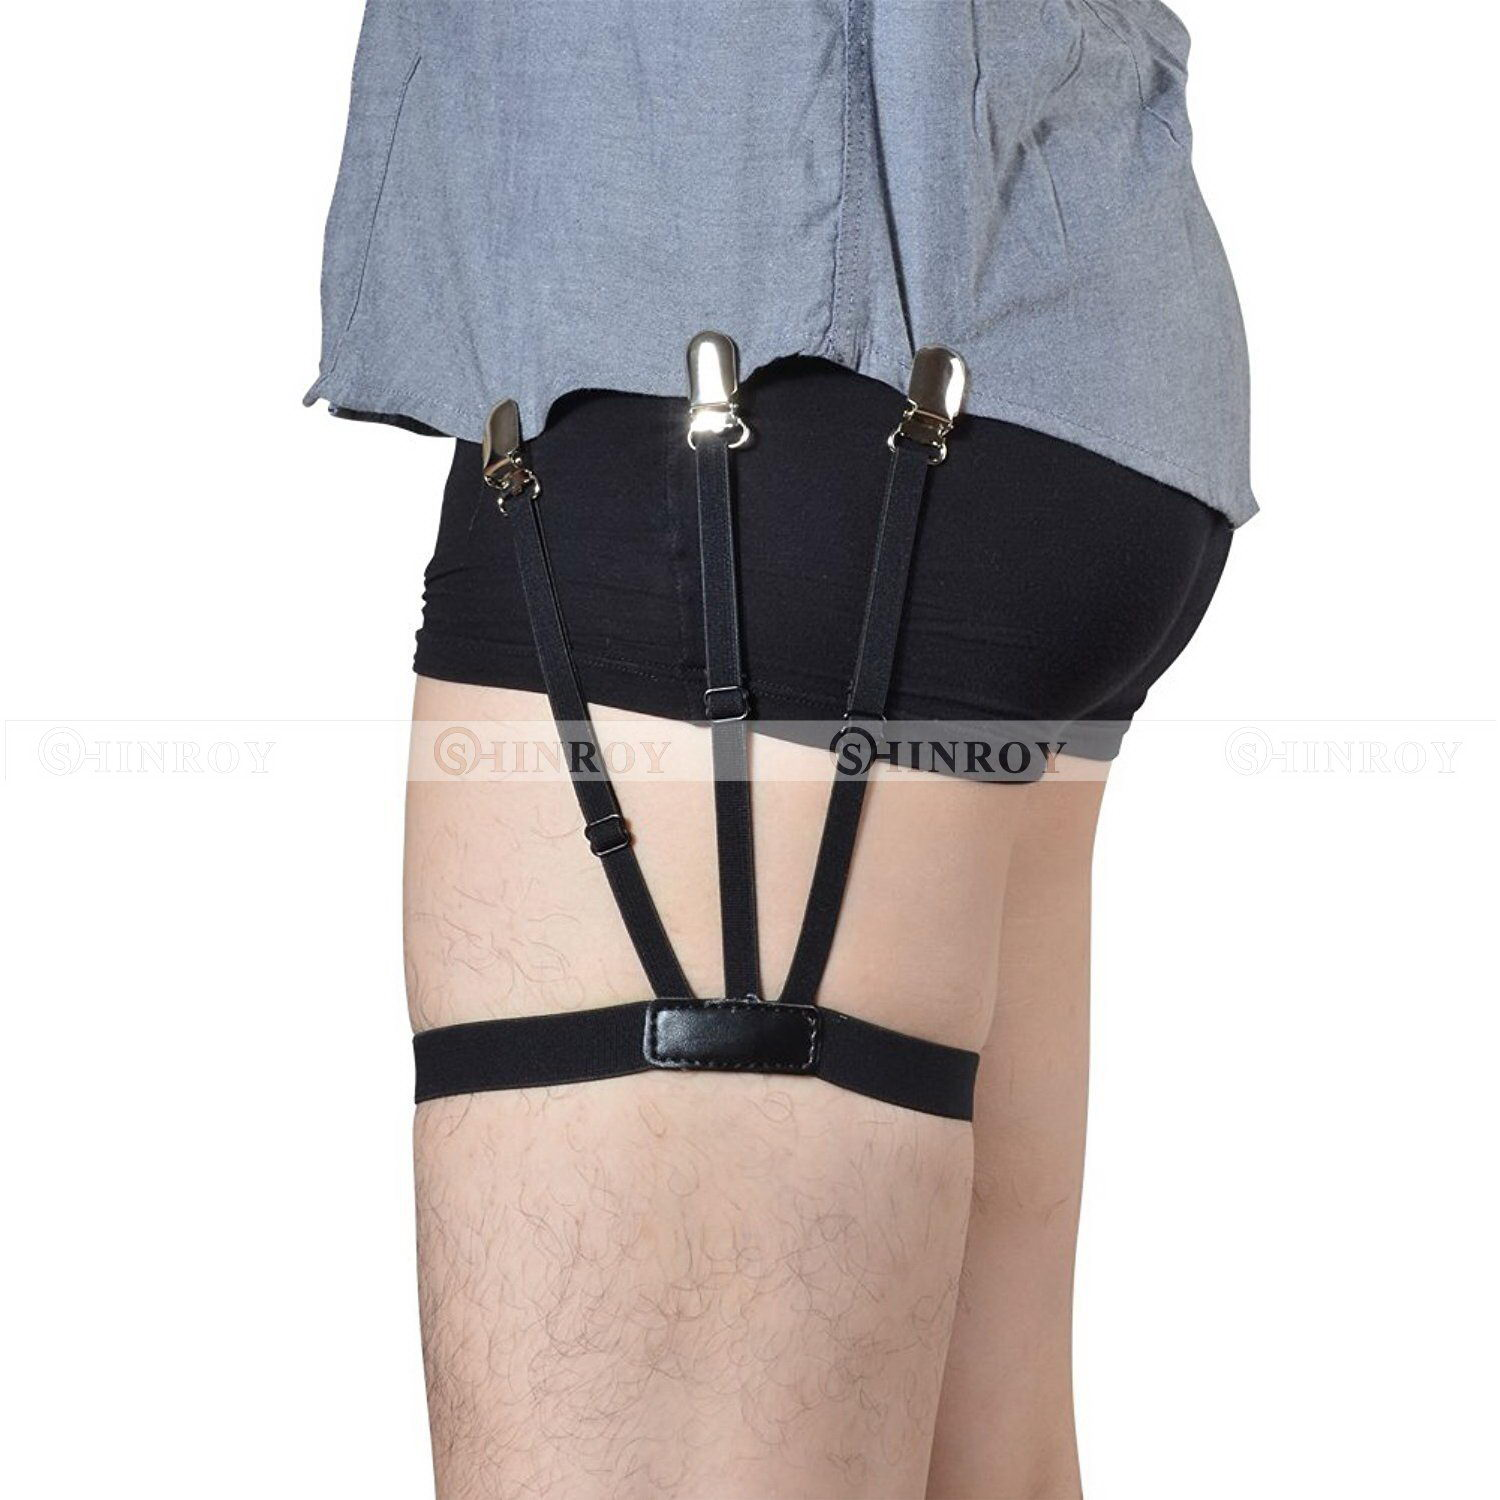 Men Adjustable Elastic Band Shirt Stays Garter Straps Socks Suspenders Belts G